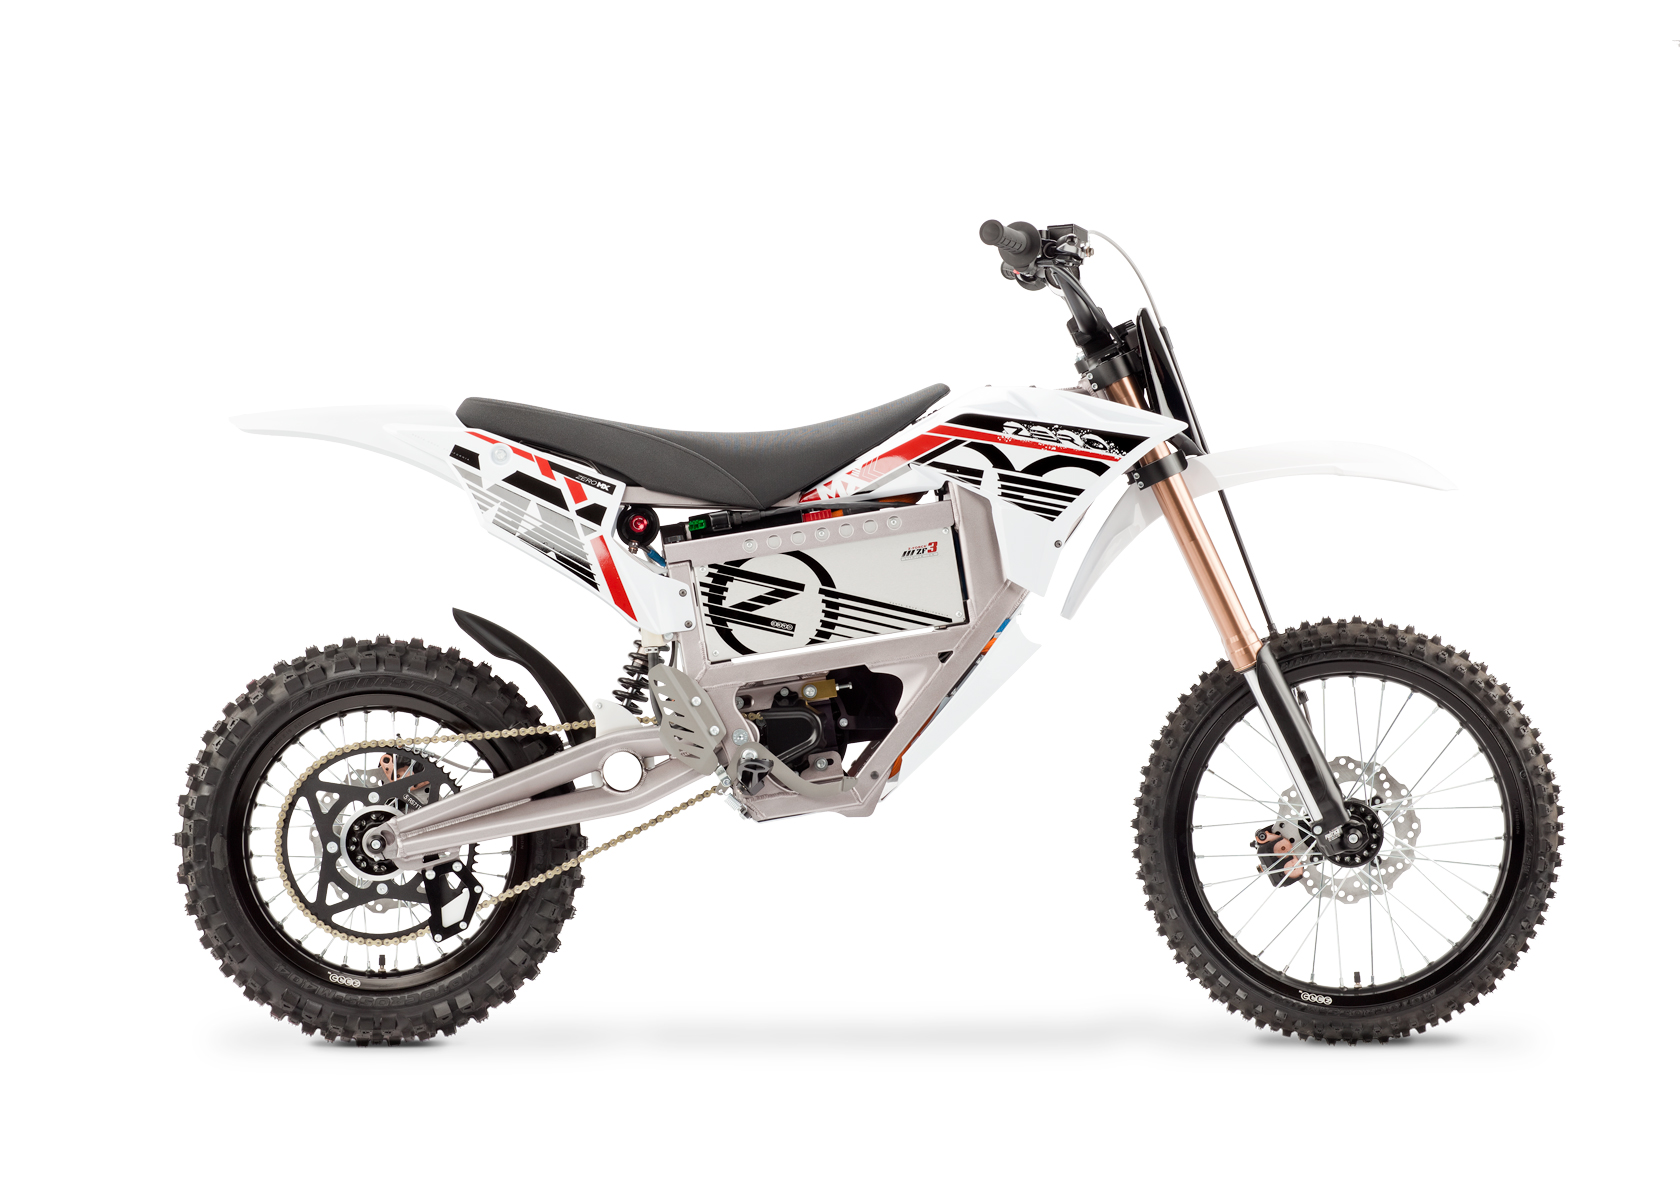 2012 Zero MX Electric Motorcycle: Right Profile, White Background